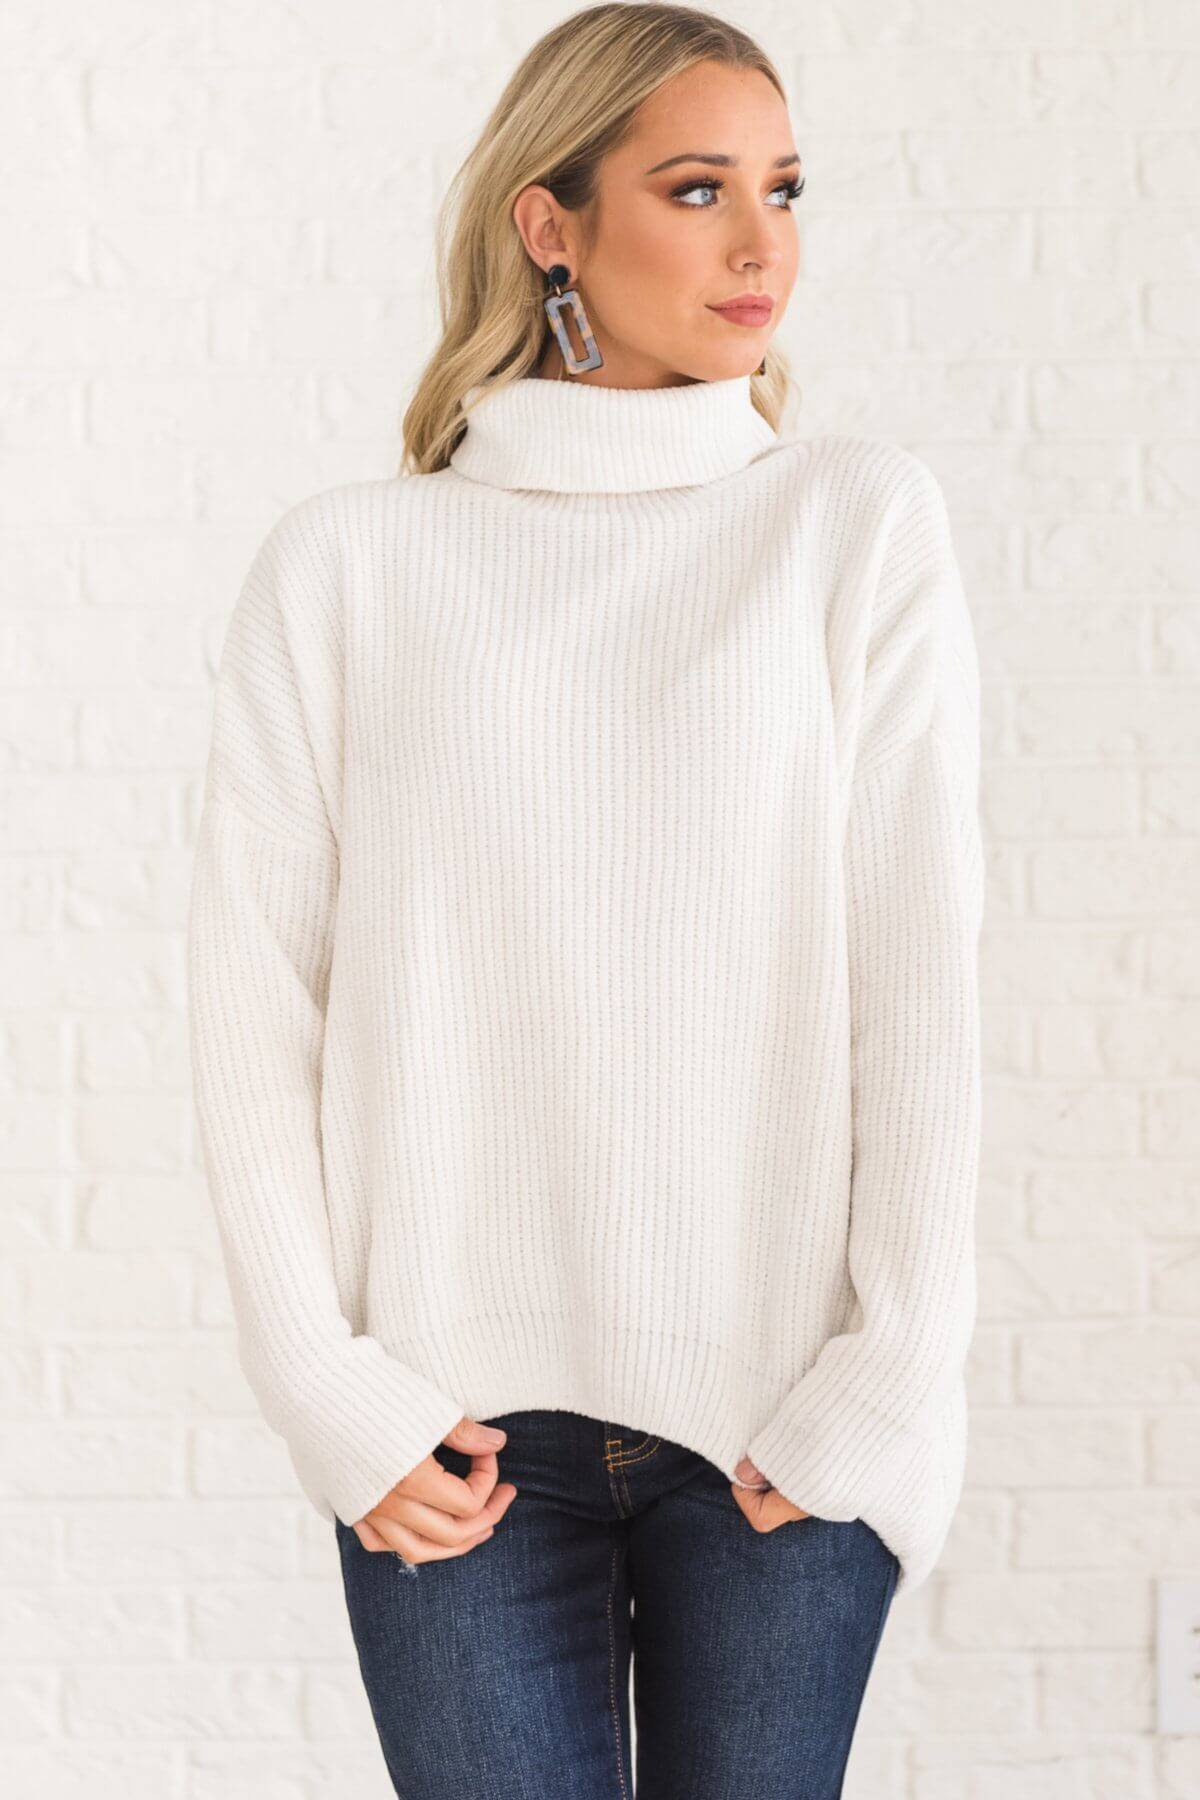 White Soft Knit Chenille Cowl Neck Turtleneck Sweaters